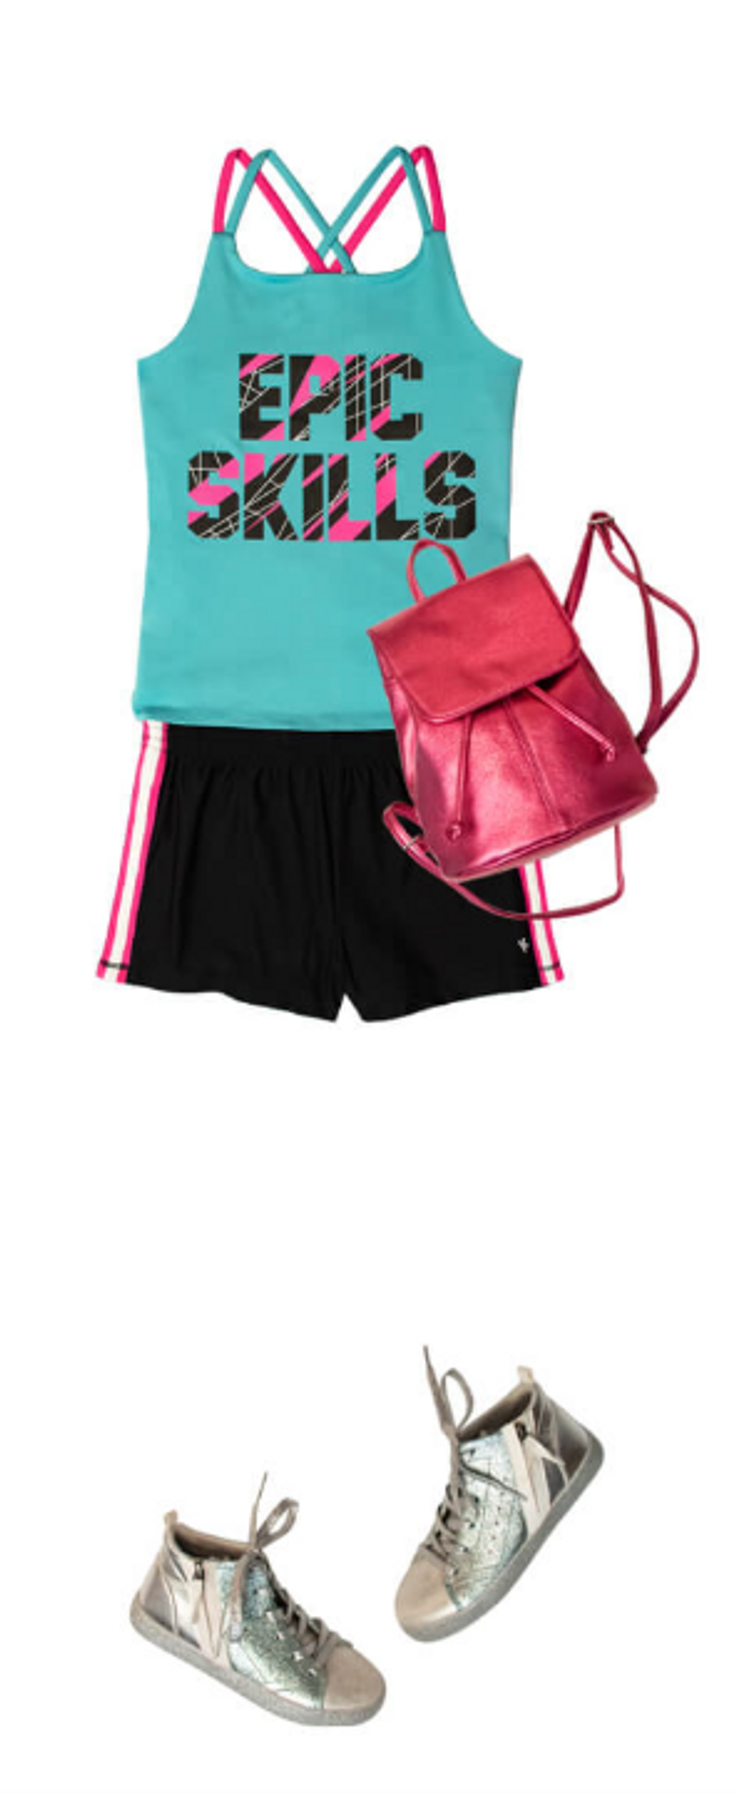 tank top with matching shorts, shoes ...